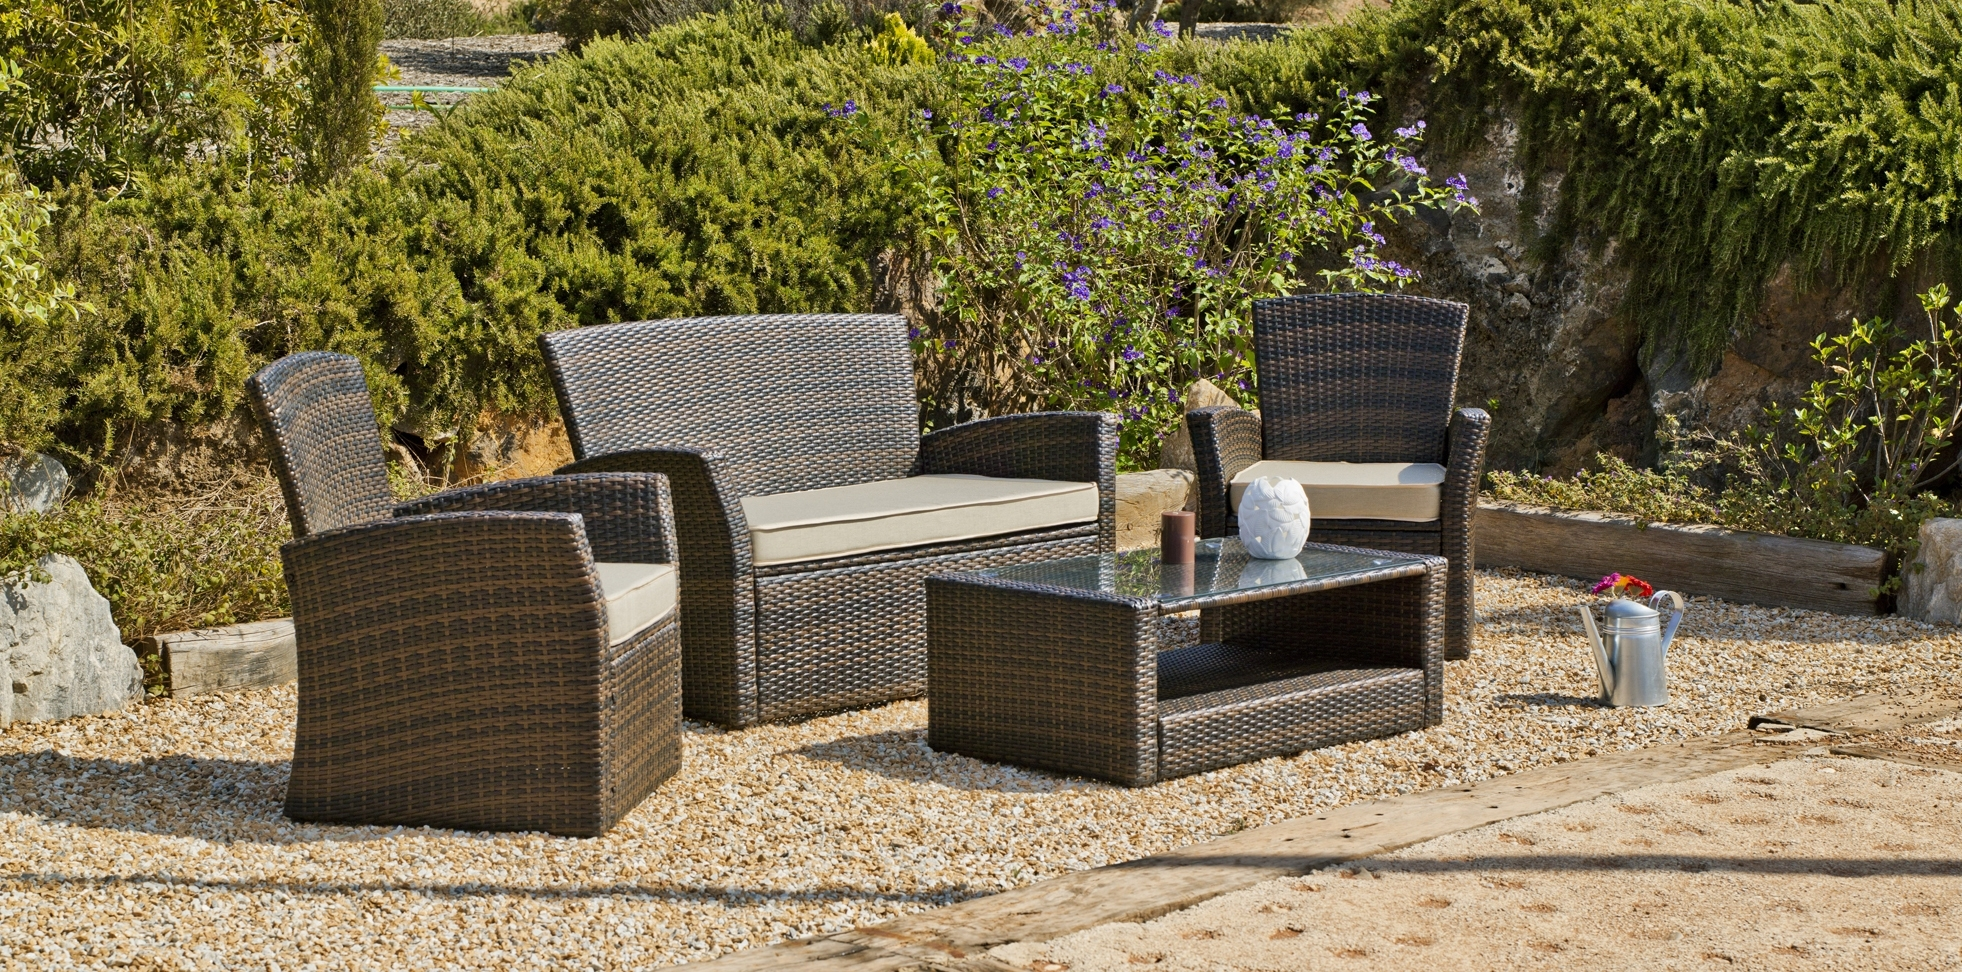 Hevea alpes r f am nagement ext rieur mobilier d for Hevea jardin